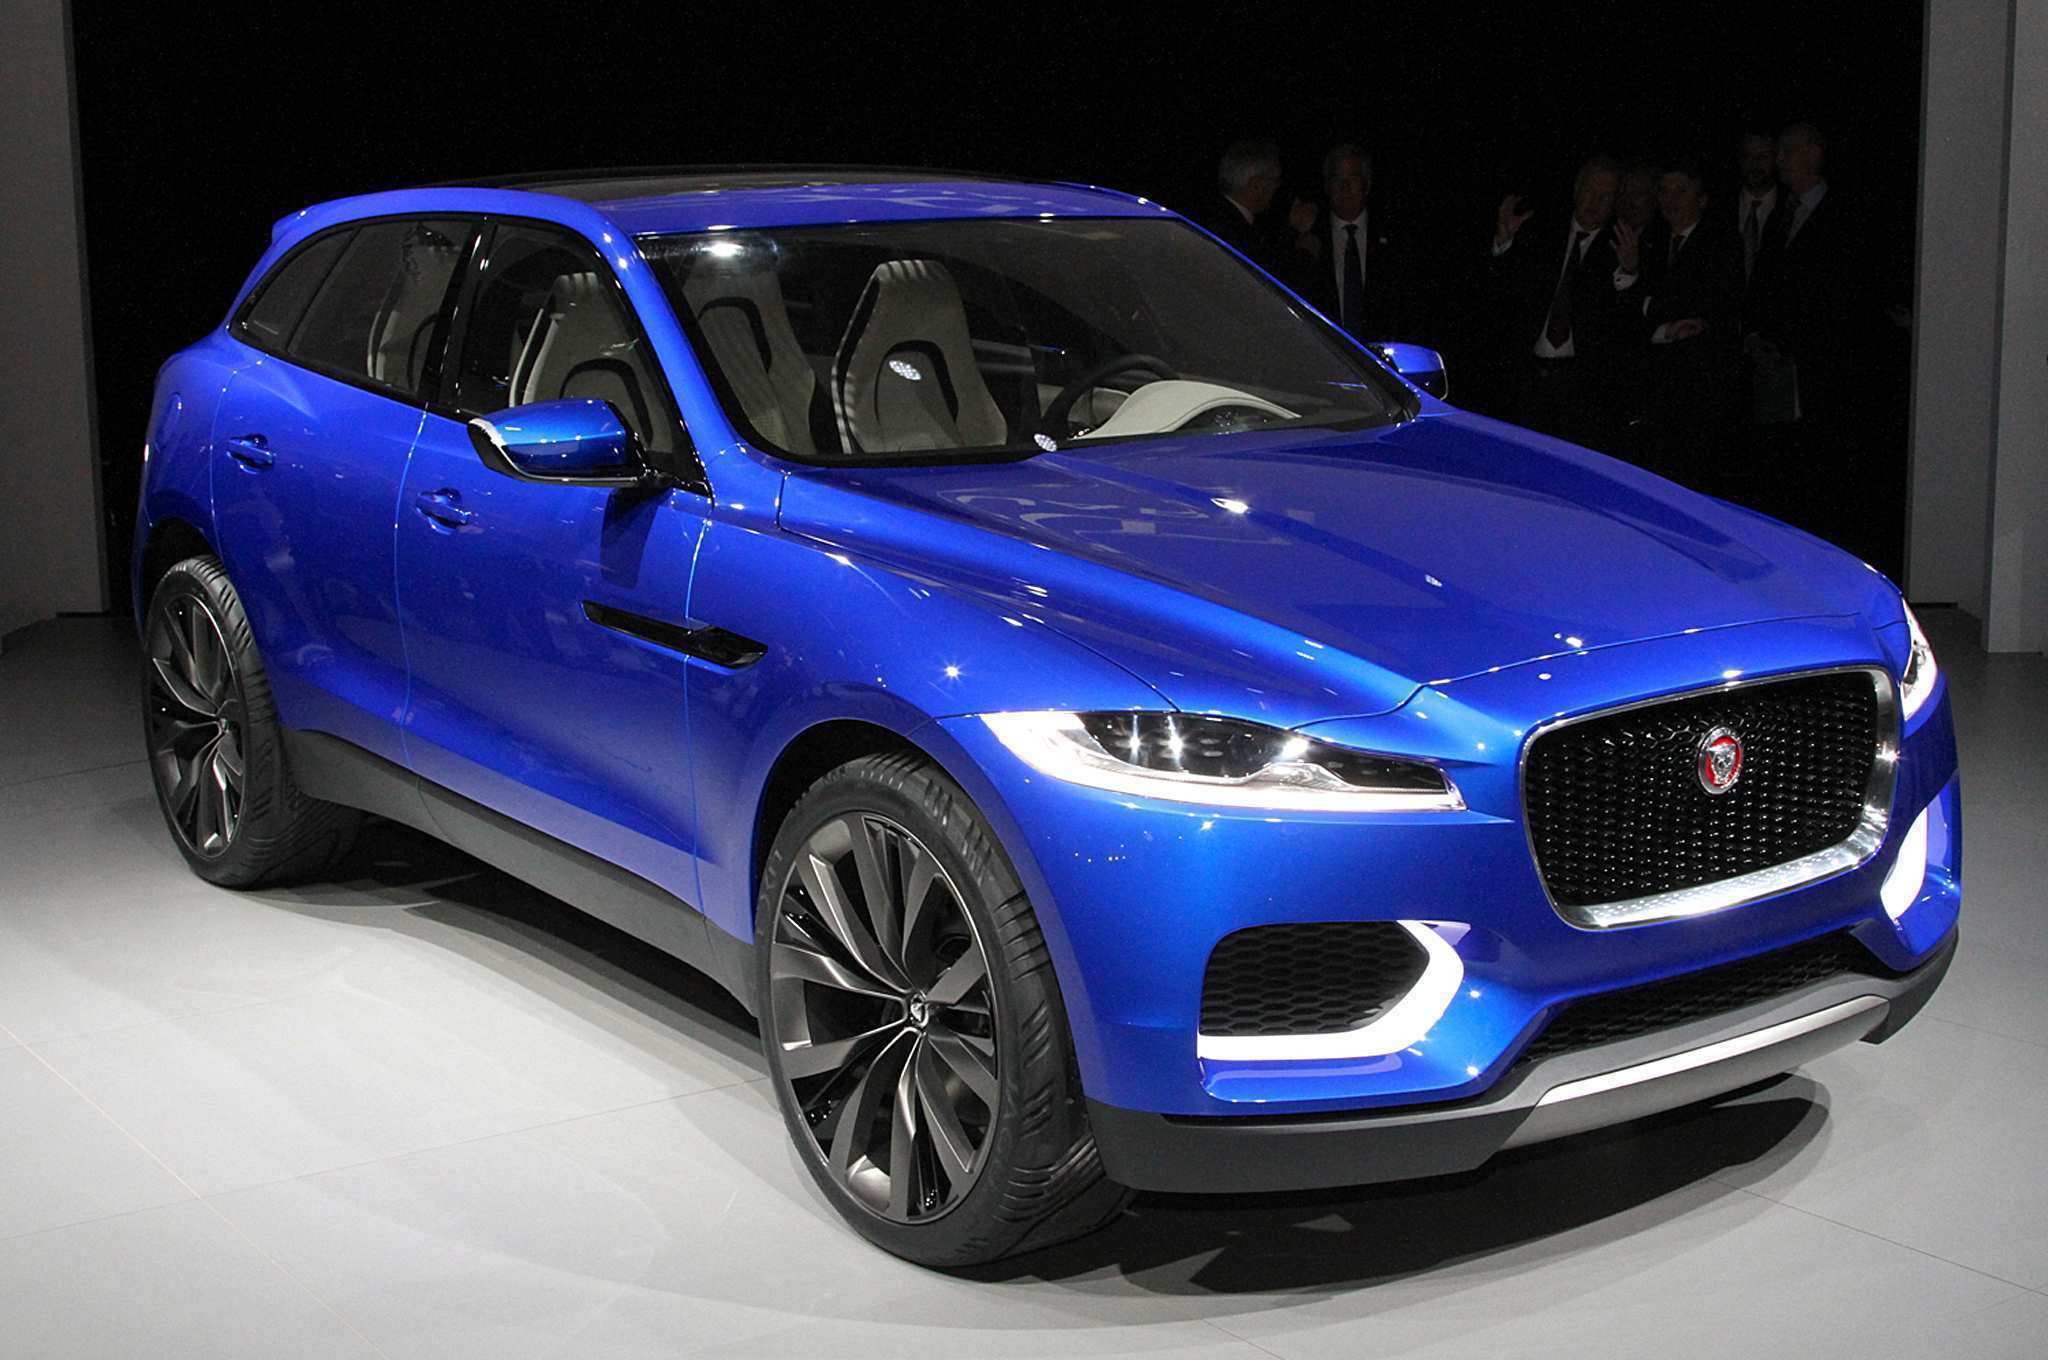 87 A 2020 Jaguar C X17 Crossover Prices